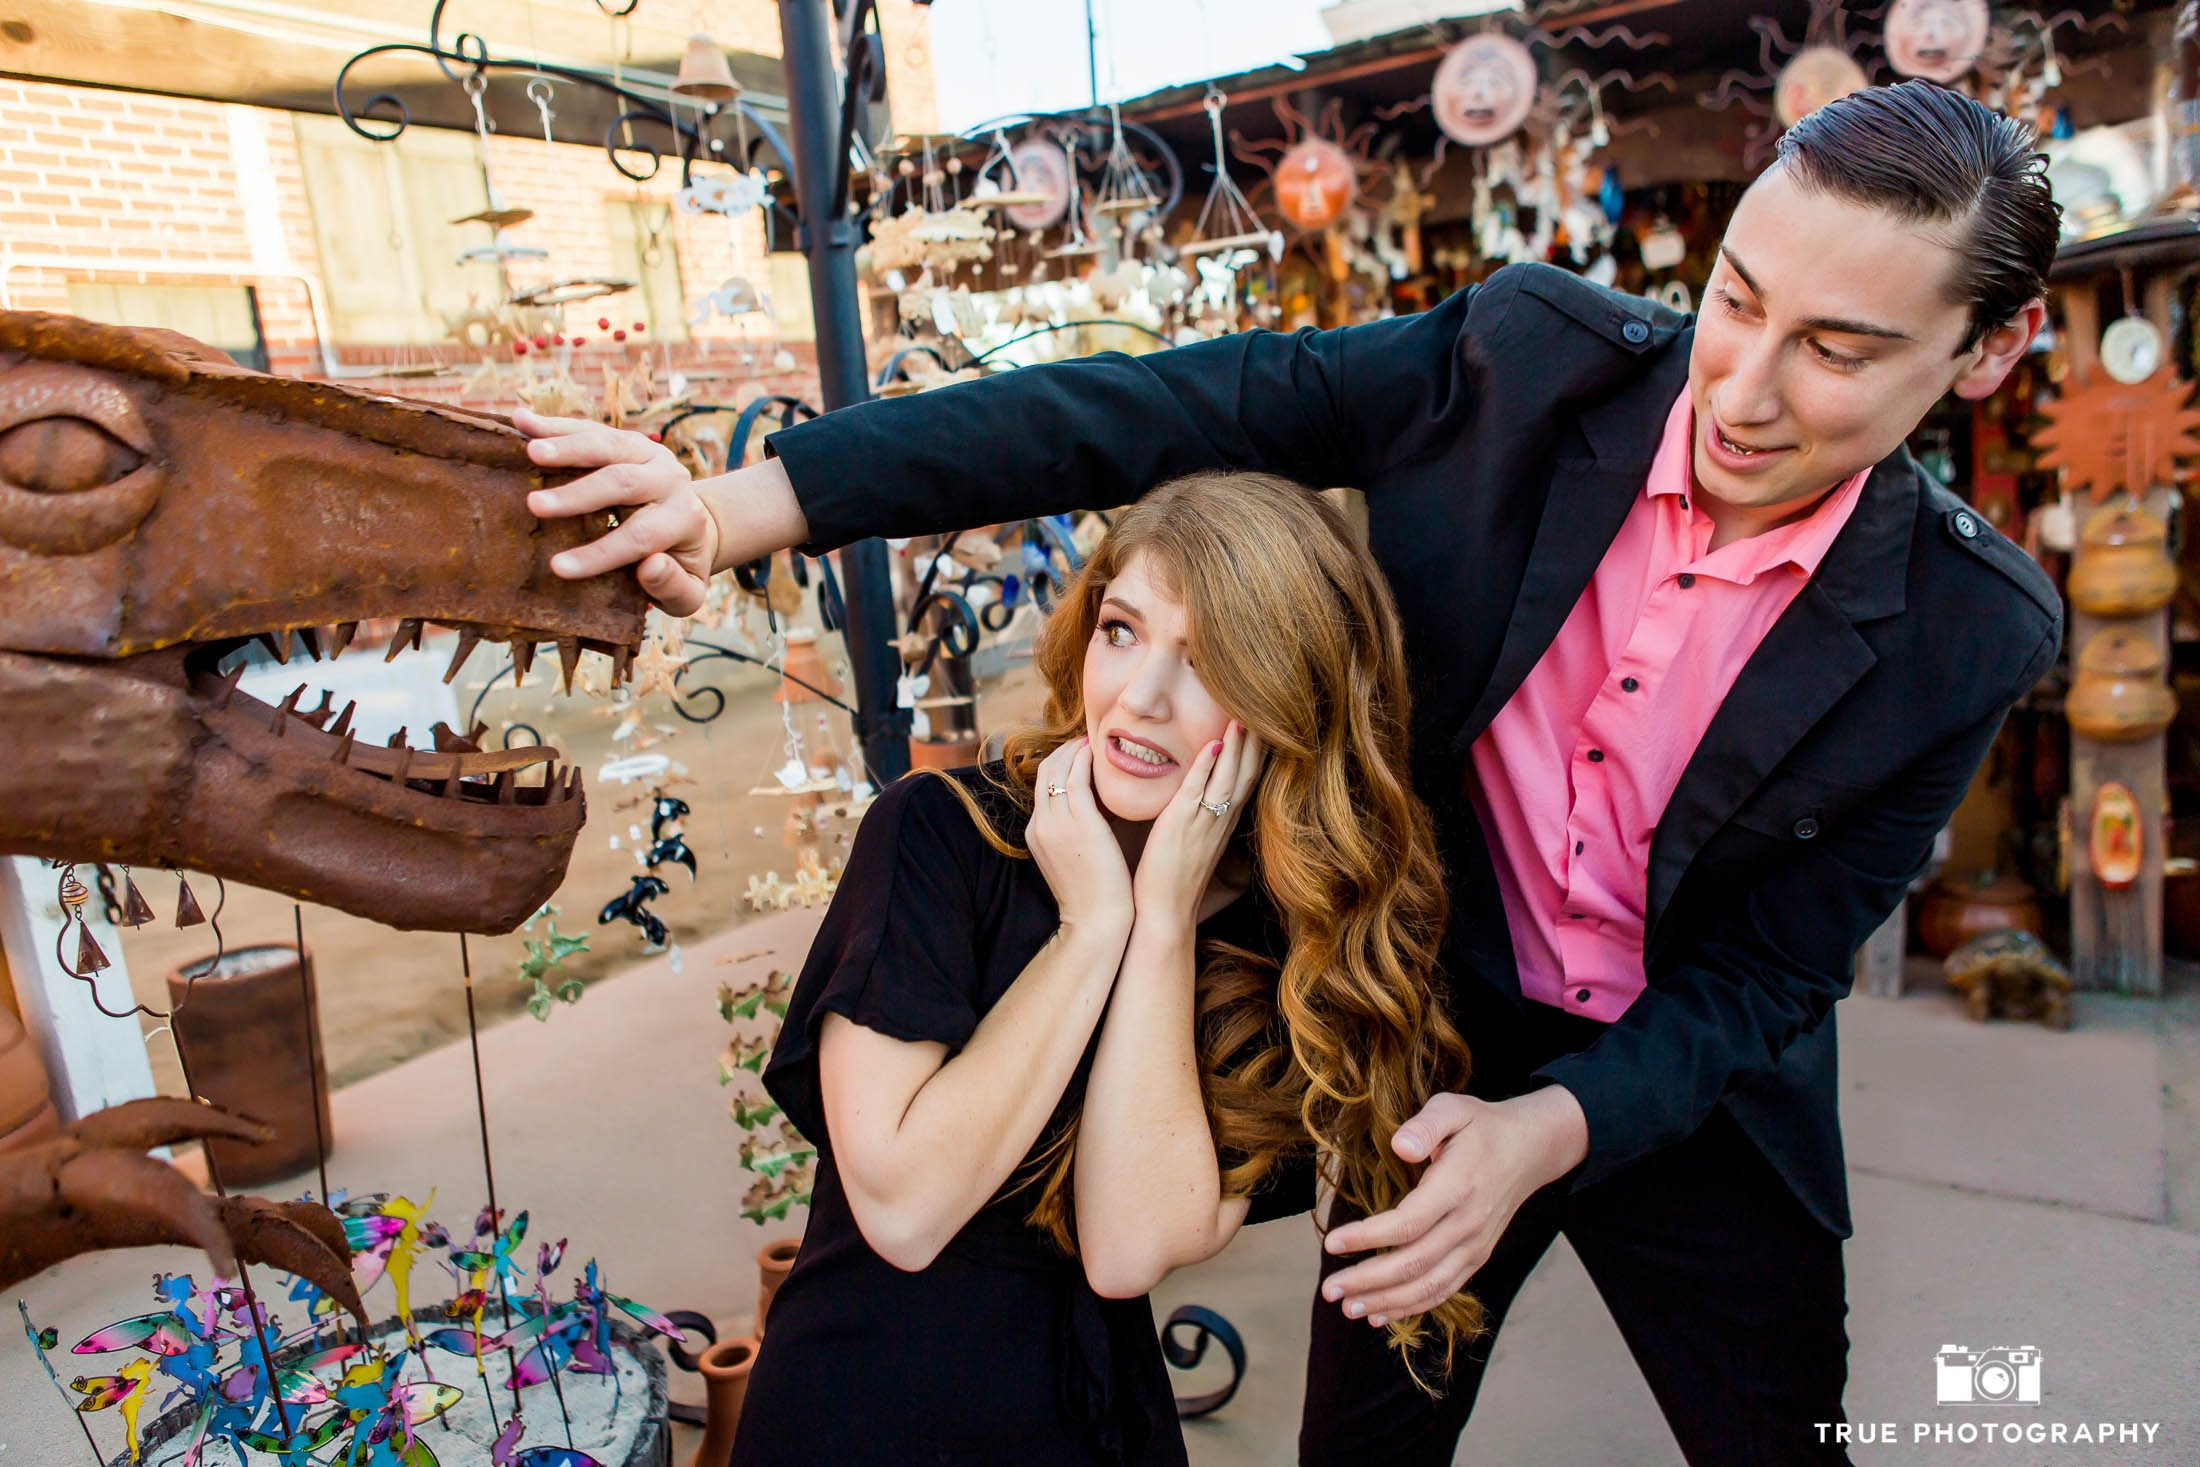 dinosaur garden sculpture funny old town engagement photo shoot photo